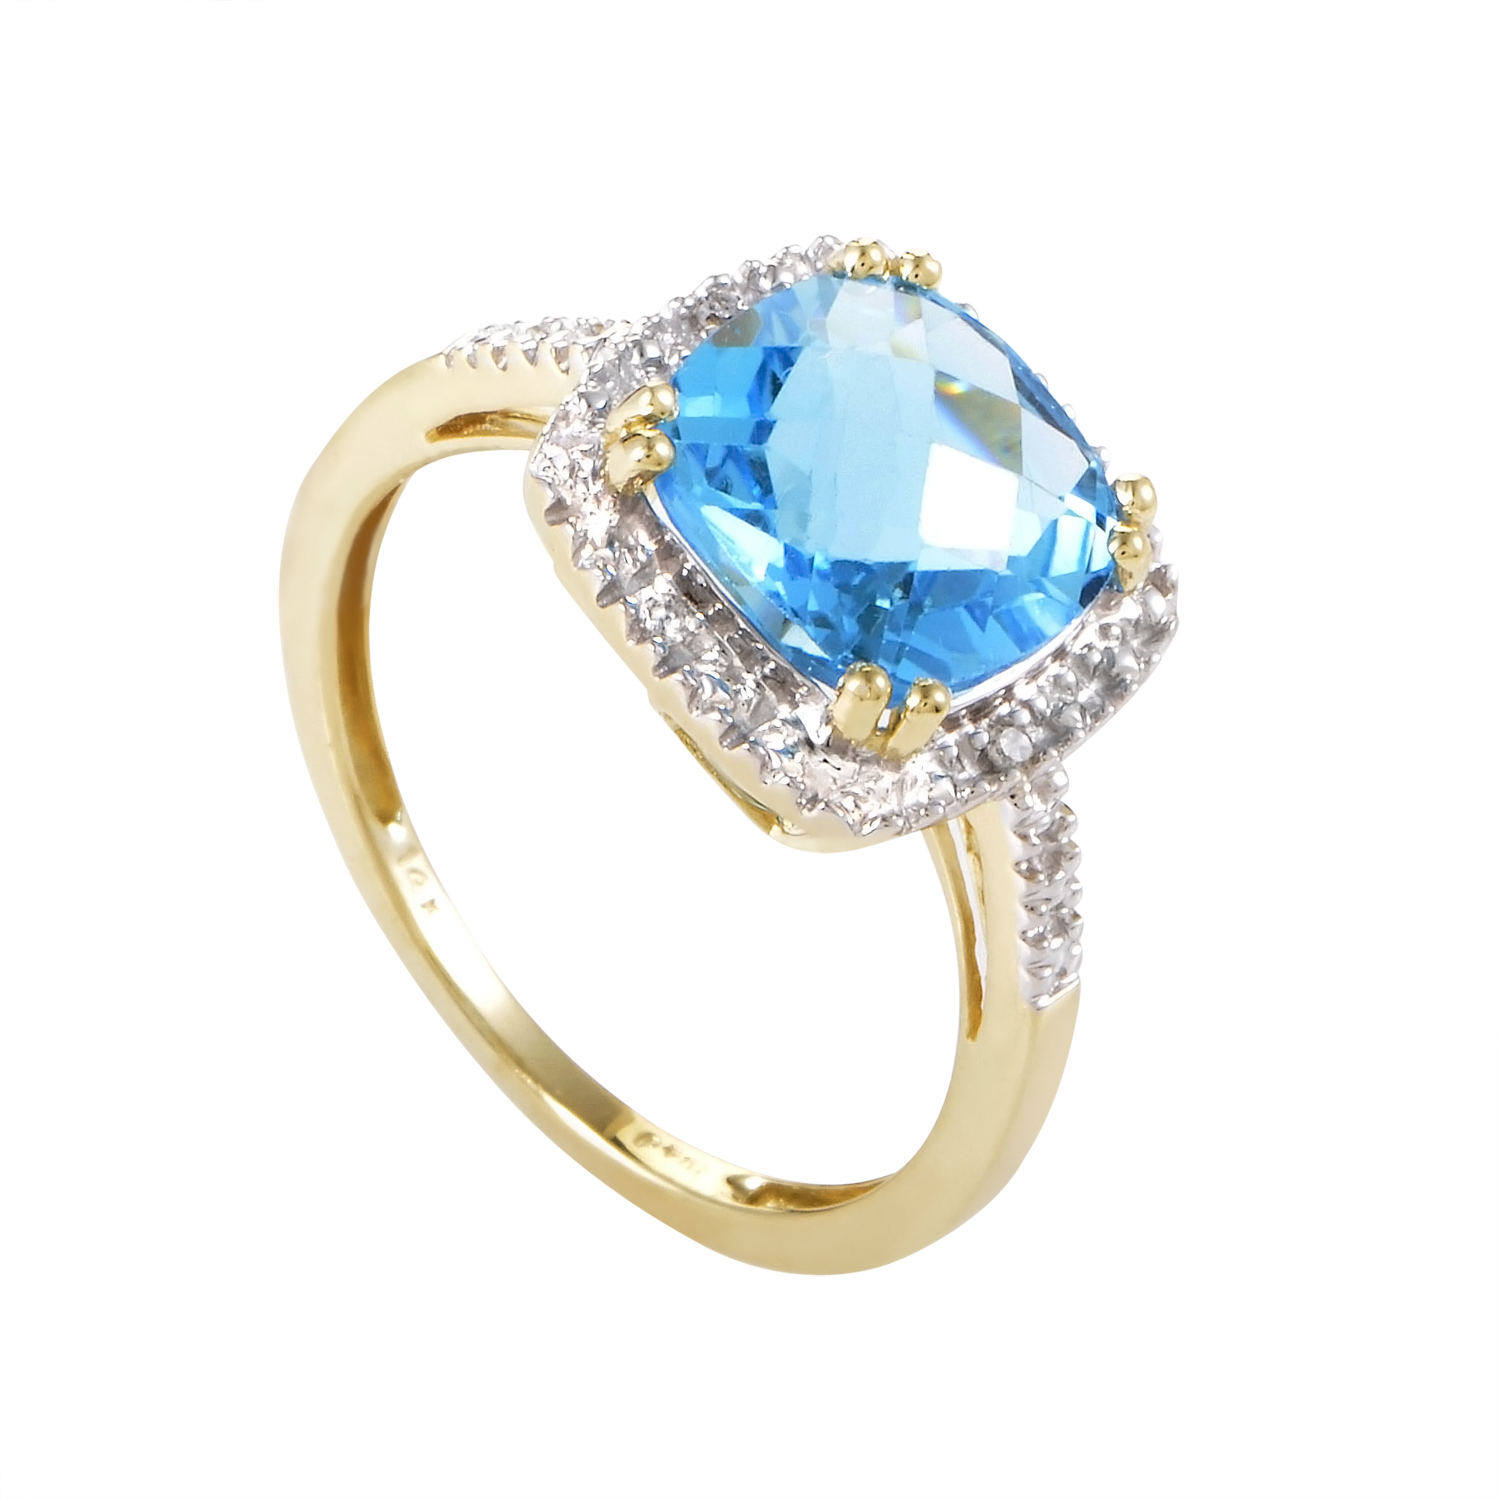 Women's 14K Yellow Gold Diamond & Topaz Ring RC4-10316YTOP